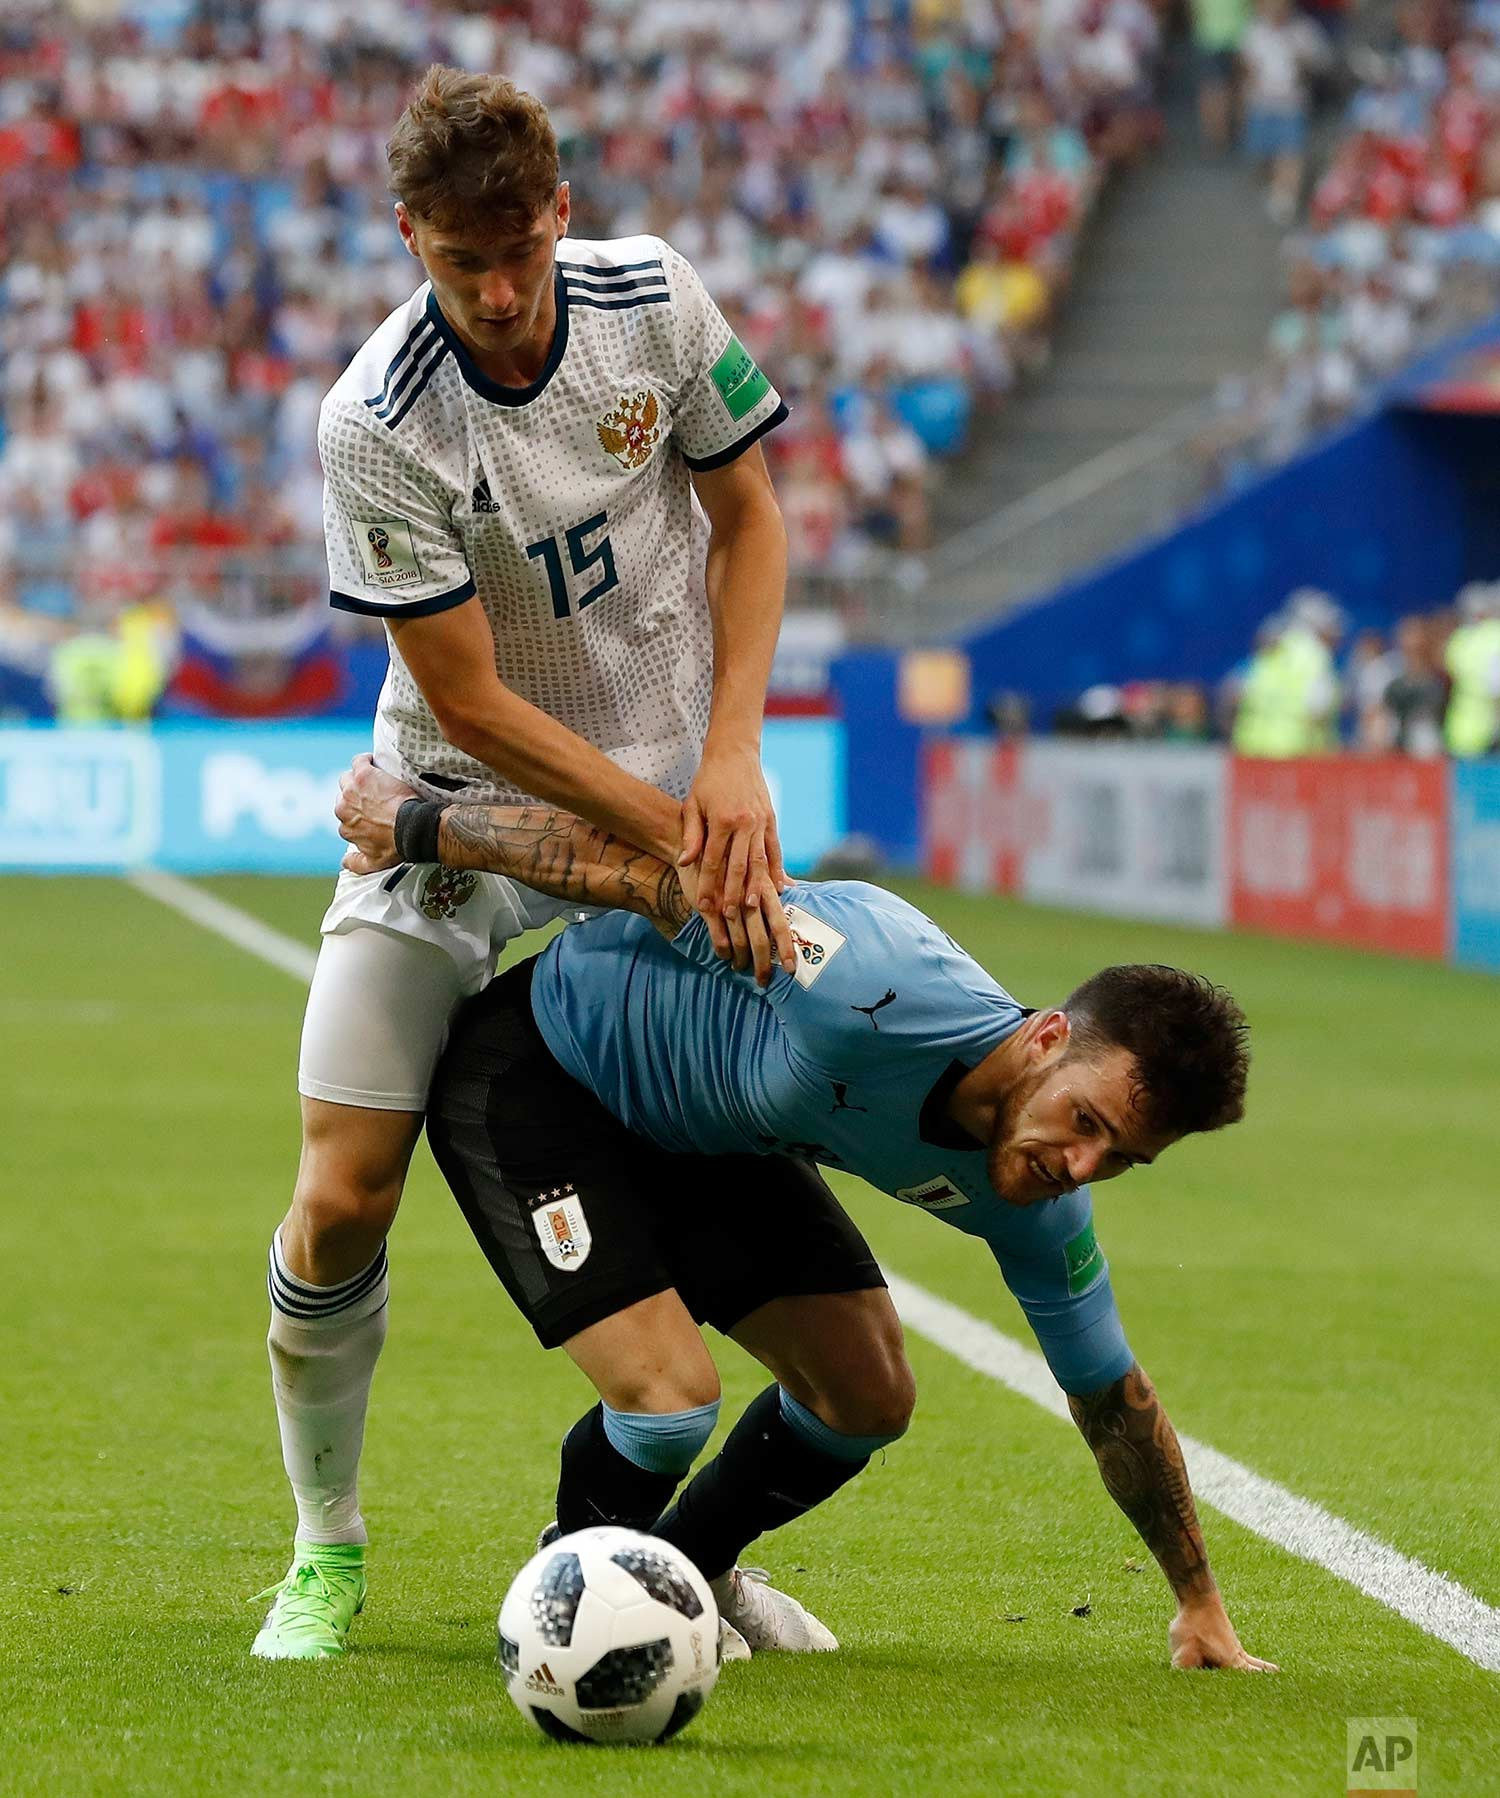 Russia's Alexei Miranchuk, left, stops Uruguay's Nahitan Nandez during the group A match between Uruguay and Russia at the 2018 soccer World Cup at the Samara Arena in Samara, Russia, Monday, June 25, 2018. (AP Photo/Rebecca Blackwell)